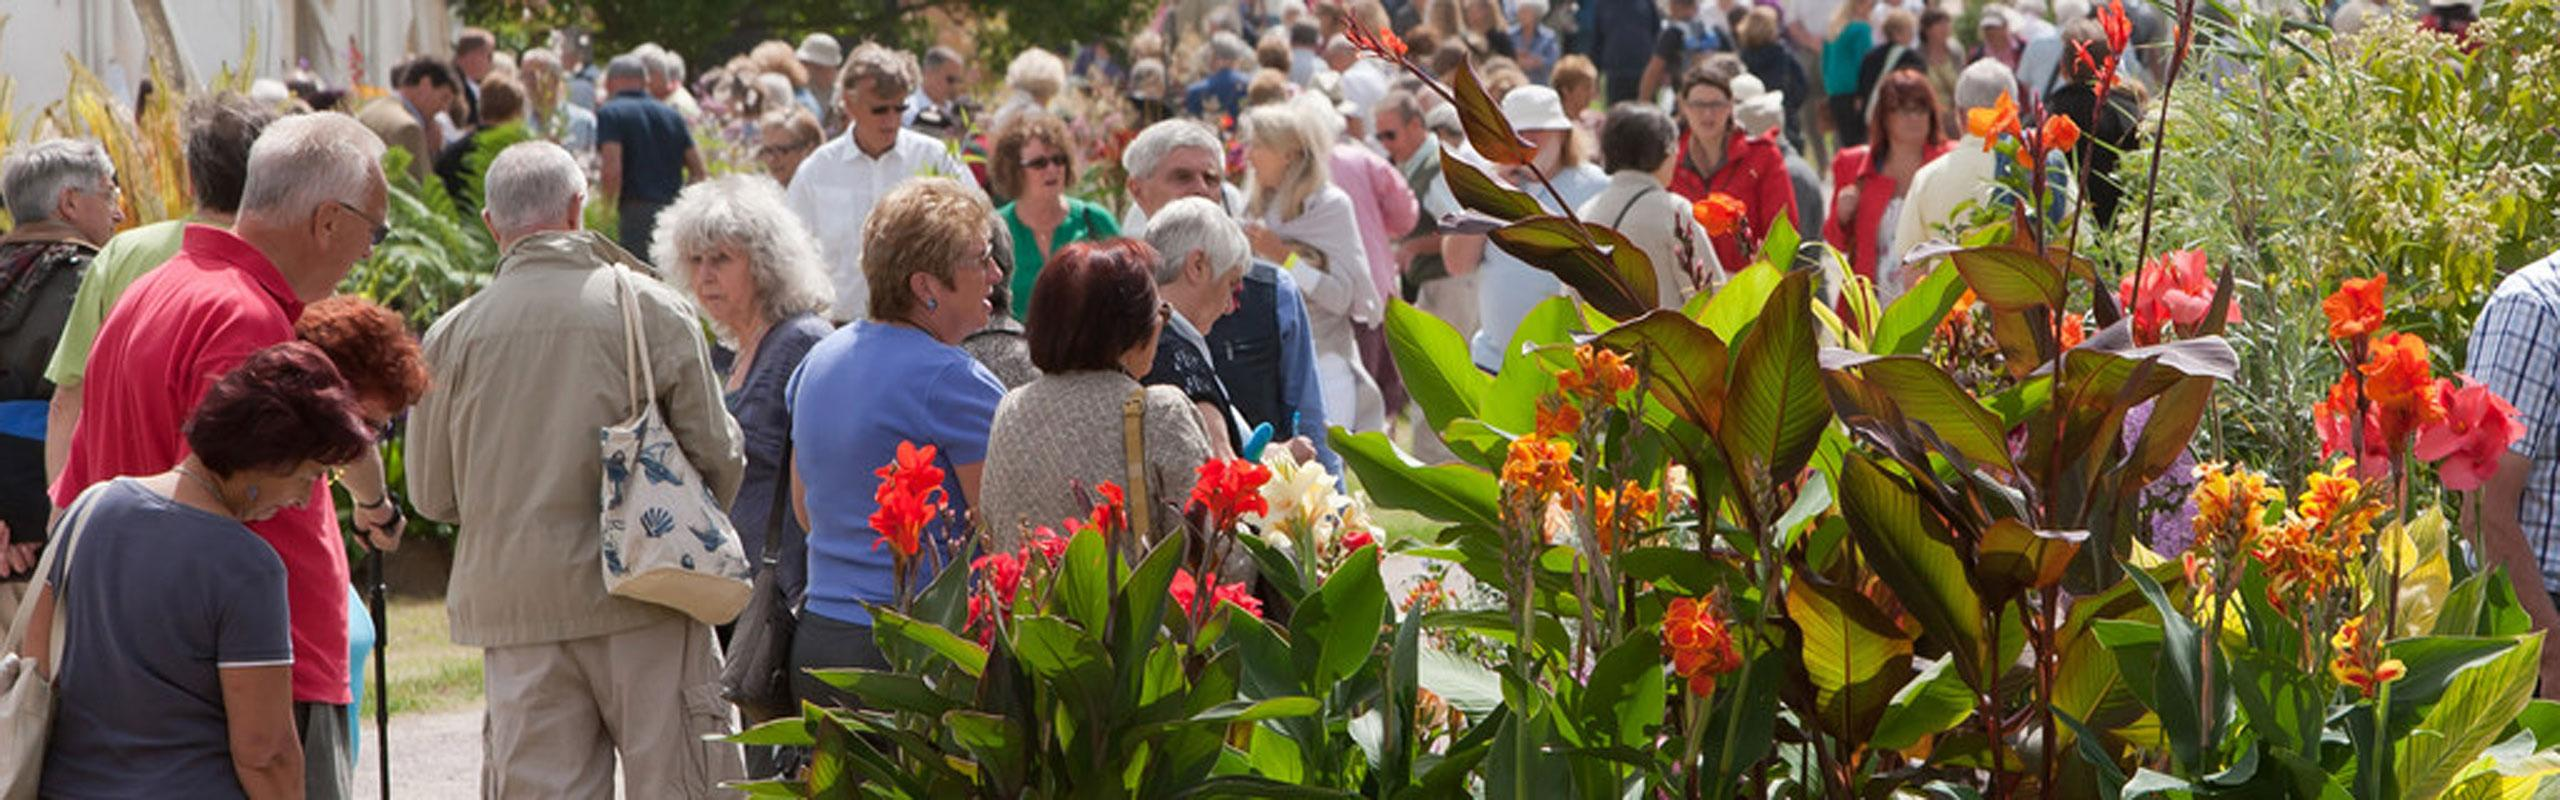 Don't miss the RHS Hampton Court Palace Flower Show